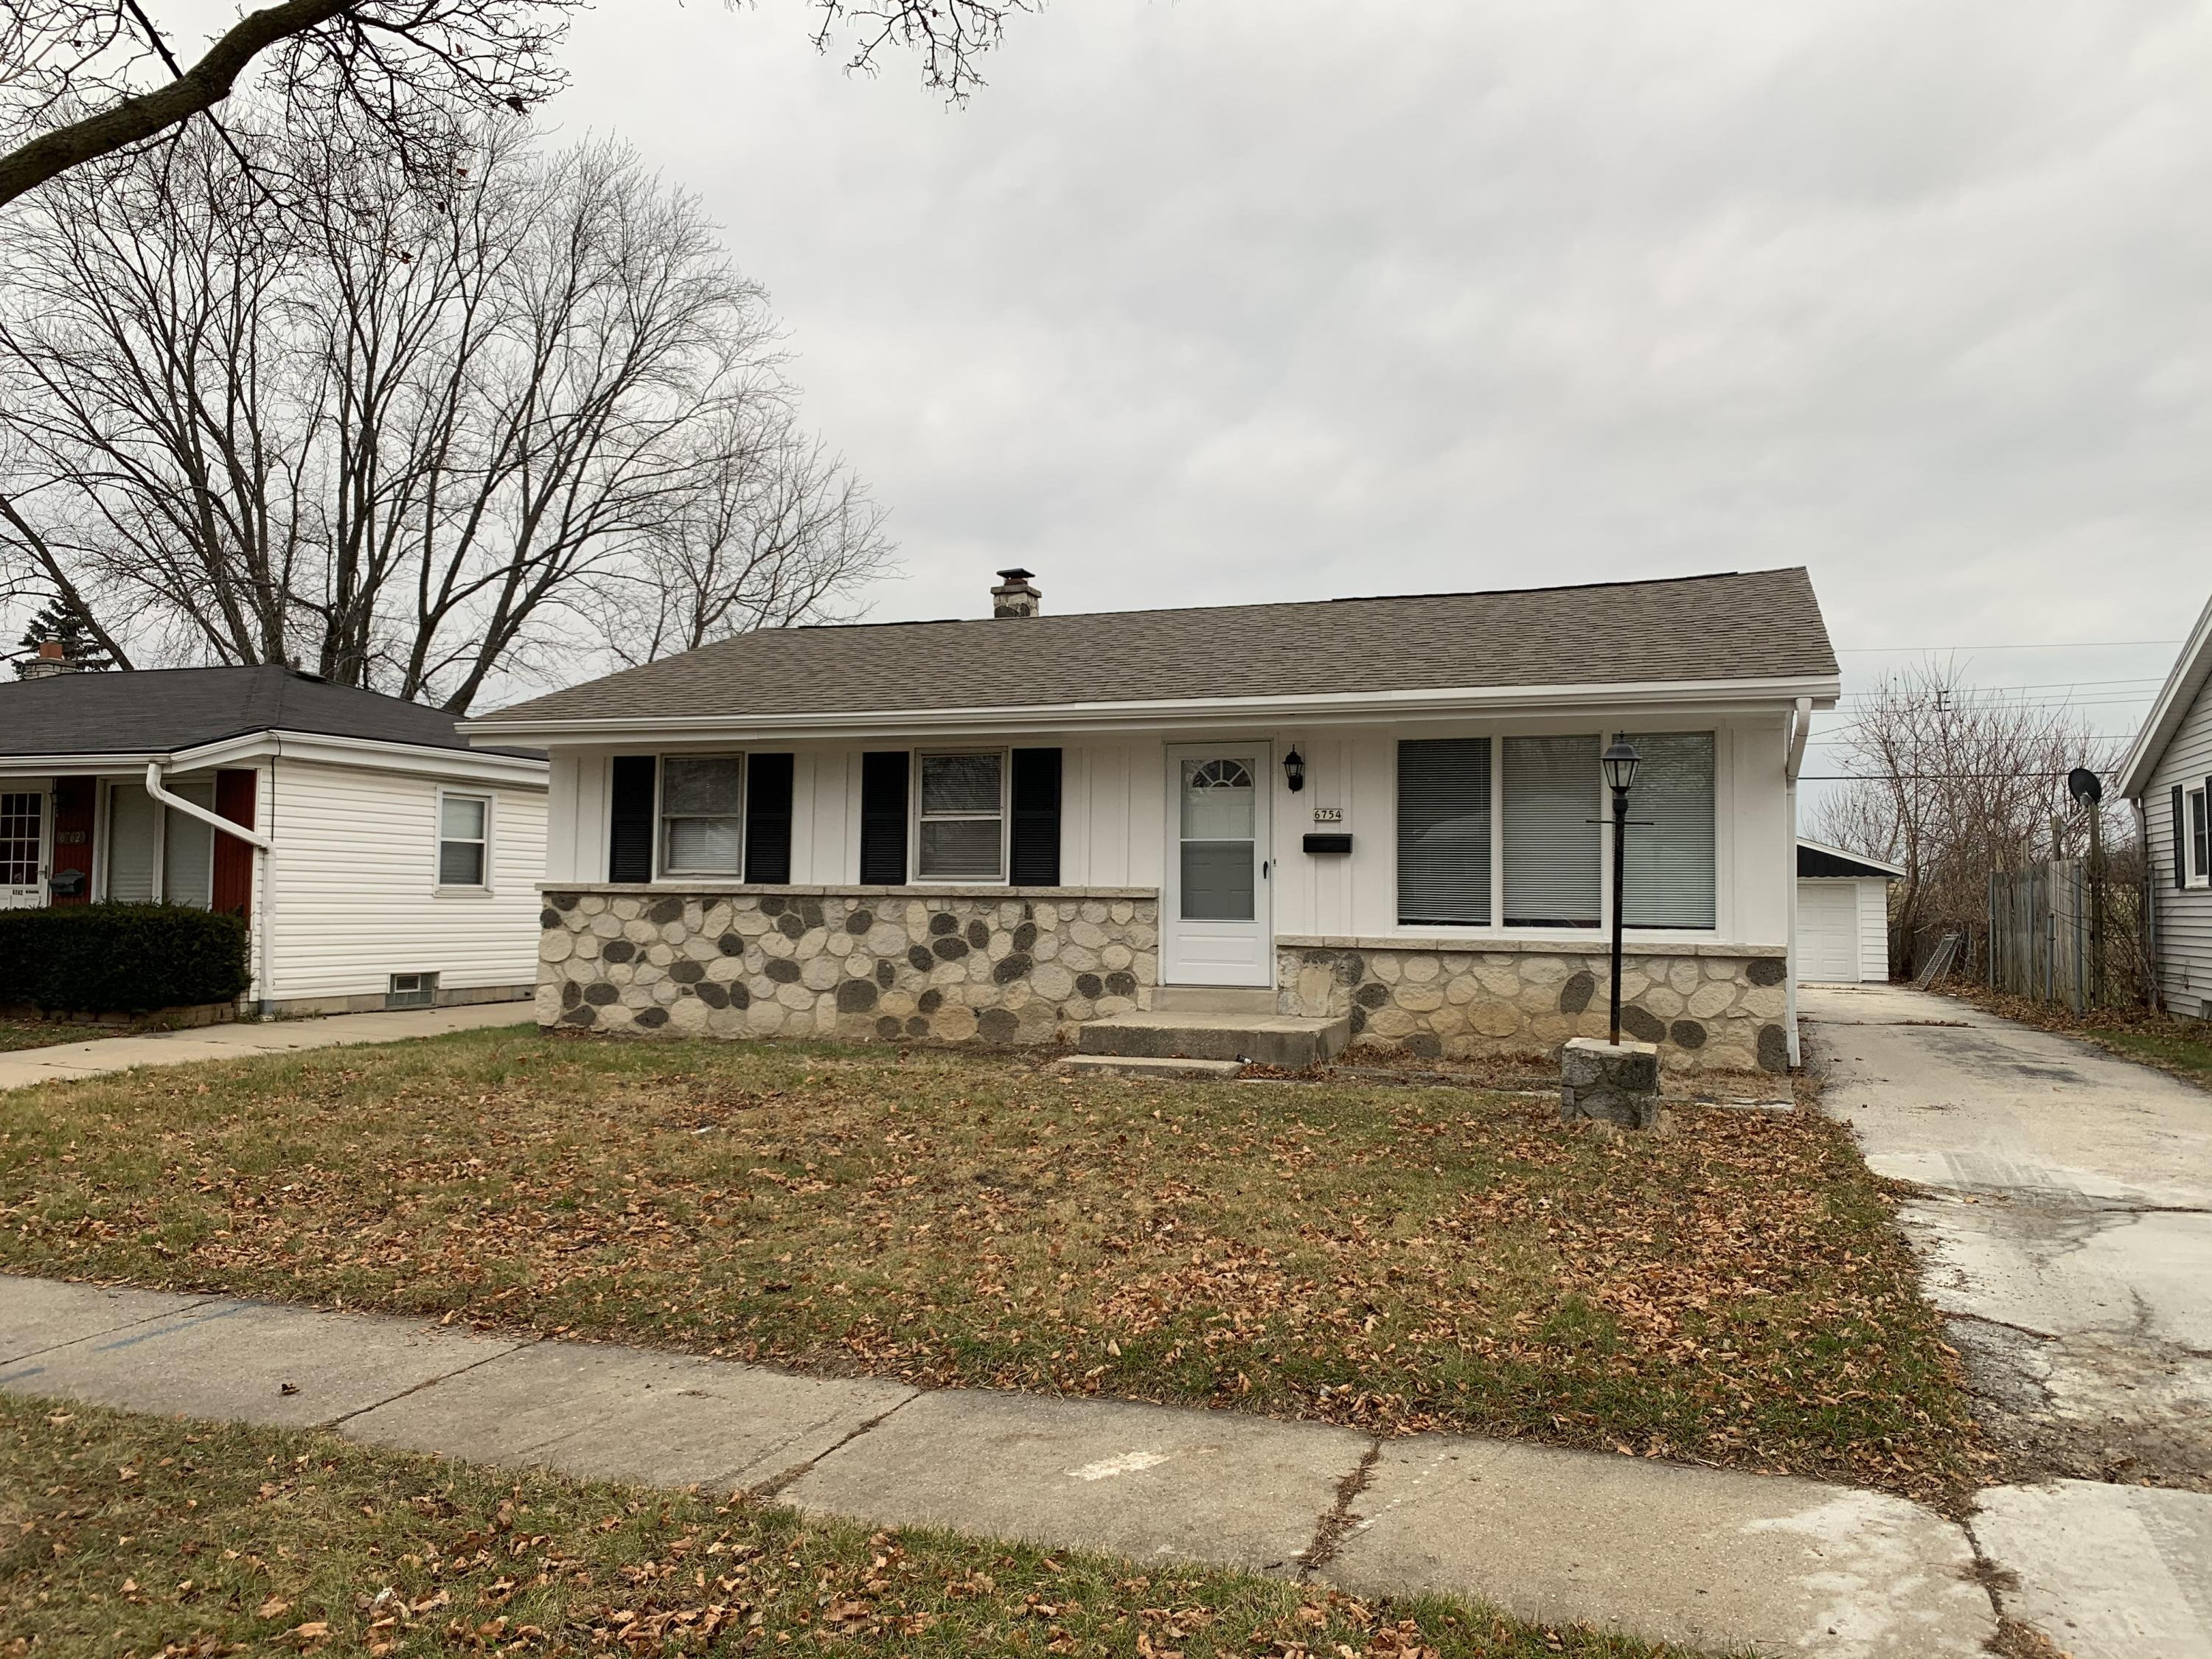 6754 51st St, Milwaukee, Wisconsin 53223, 3 Bedrooms Bedrooms, ,1 BathroomBathrooms,Single-family,For Sale,51st St,1721692